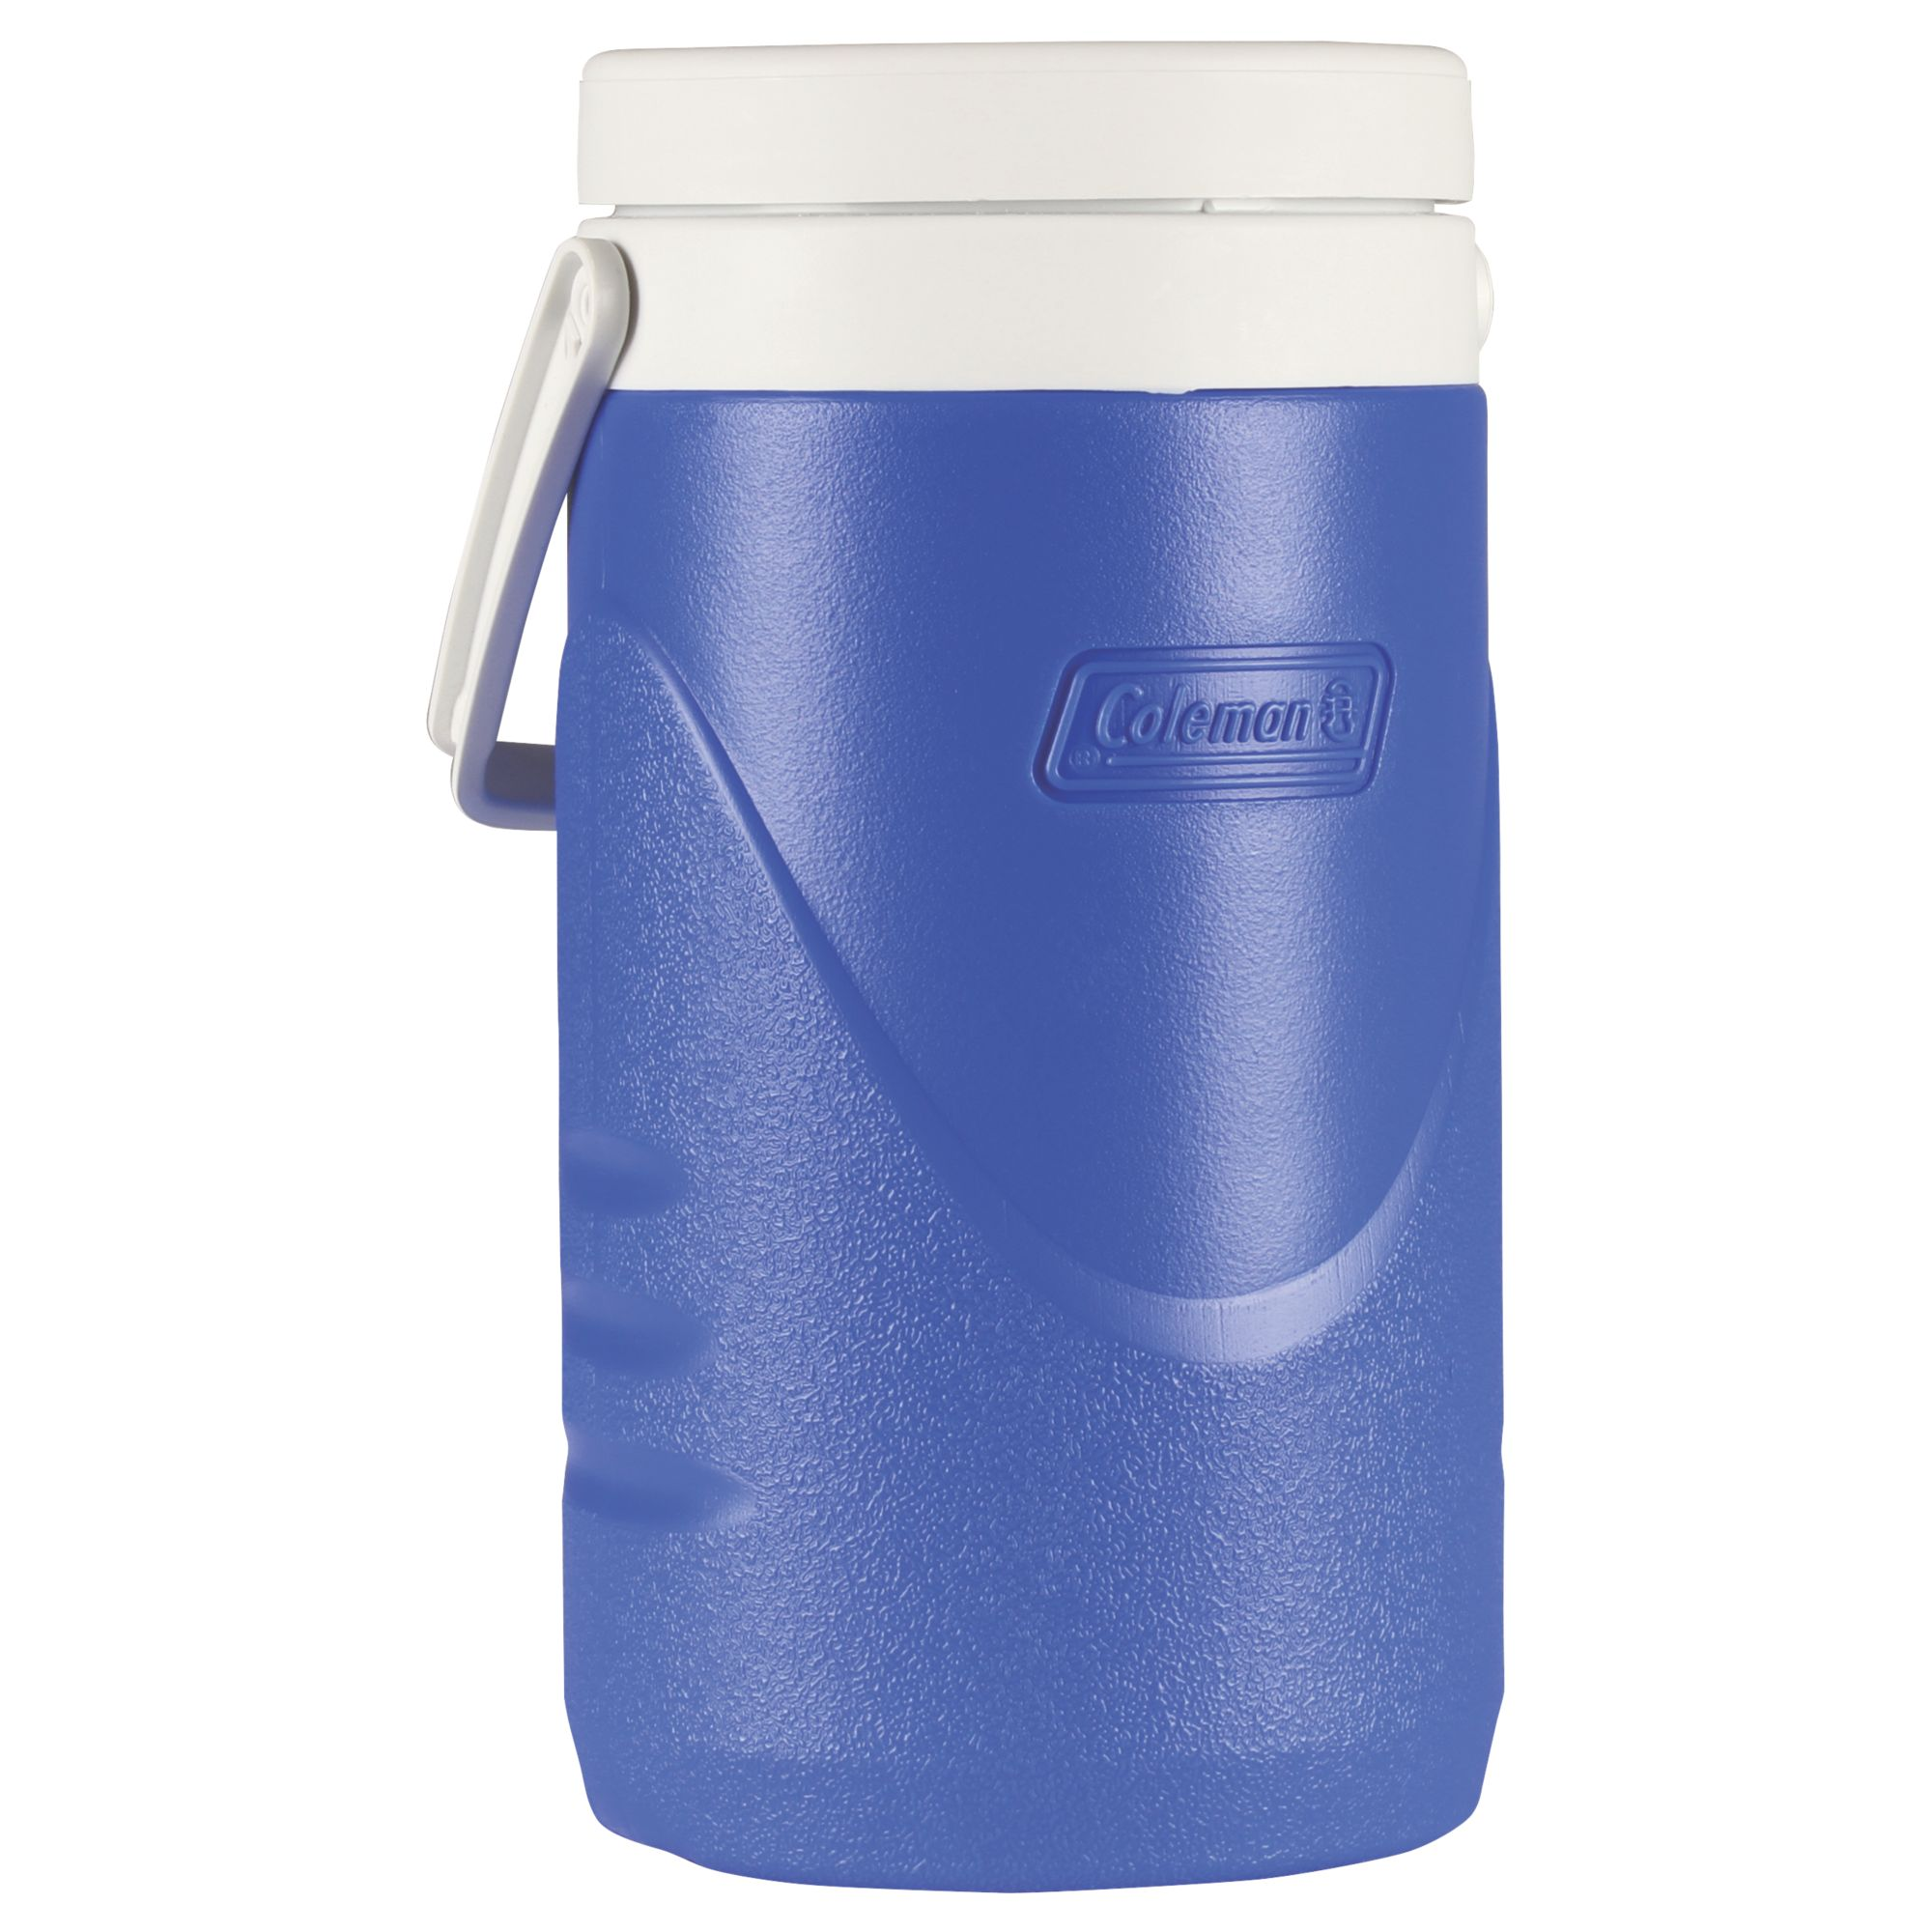 Coleman 1/2 Gallon (1.9l) Beverage Cooler